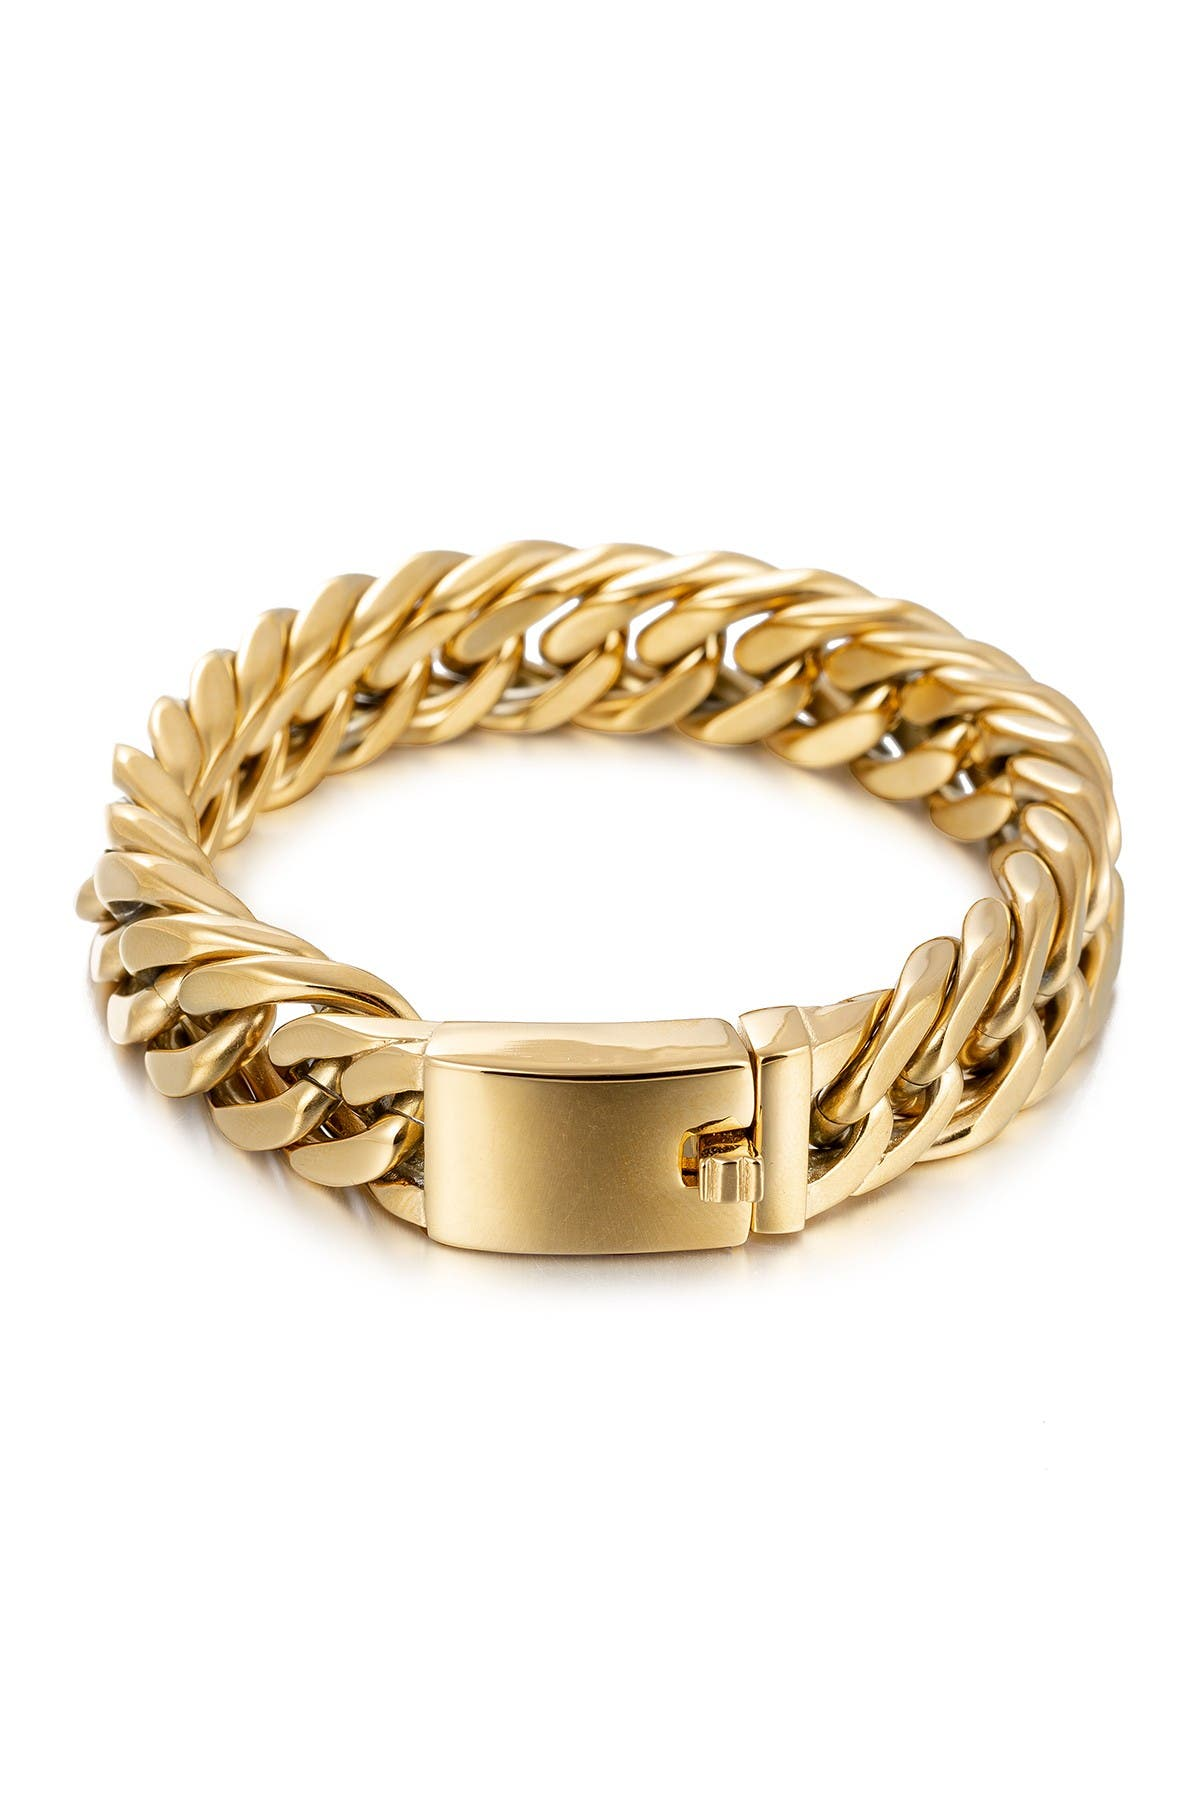 Image of Eye Candy Los Angeles Christian 18K Gold Plated Titanium Chain Bracelet